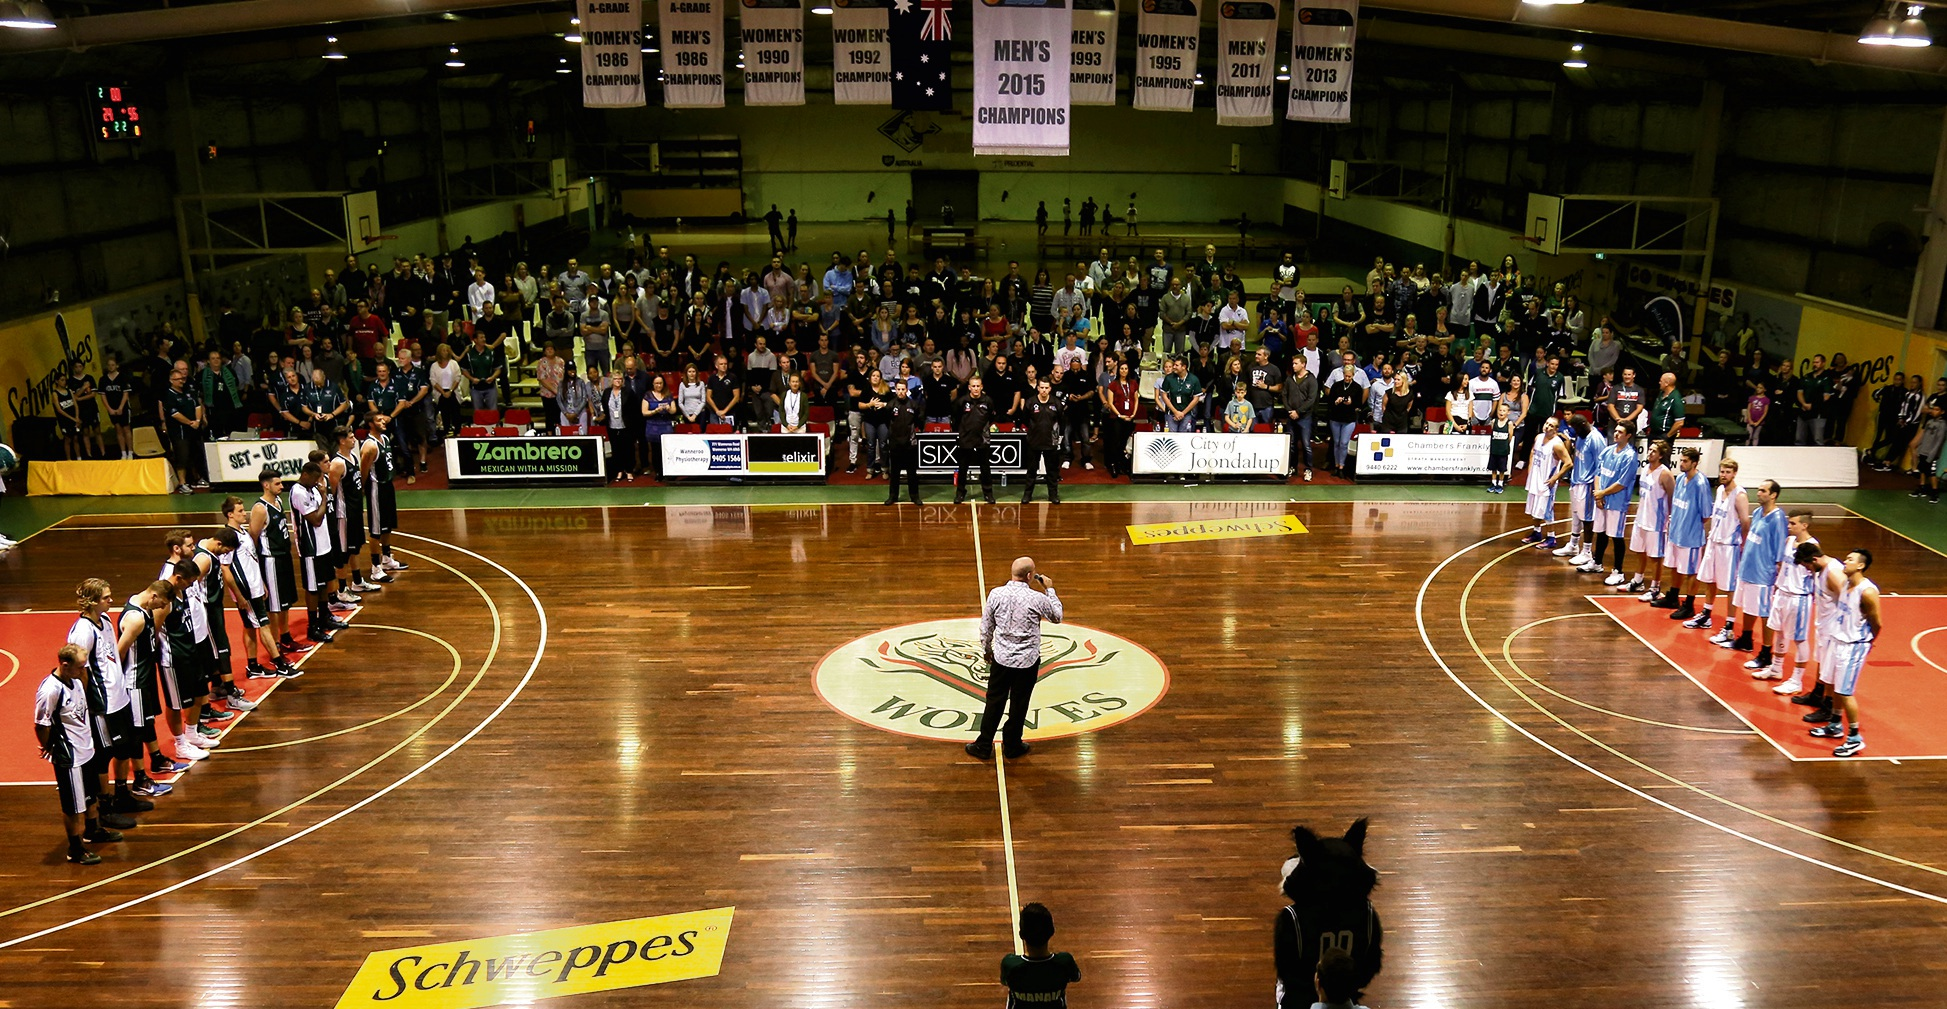 Joondalup Basketball Stadium on game night. Picture: Michael Farnell, sportsimagery.com.au